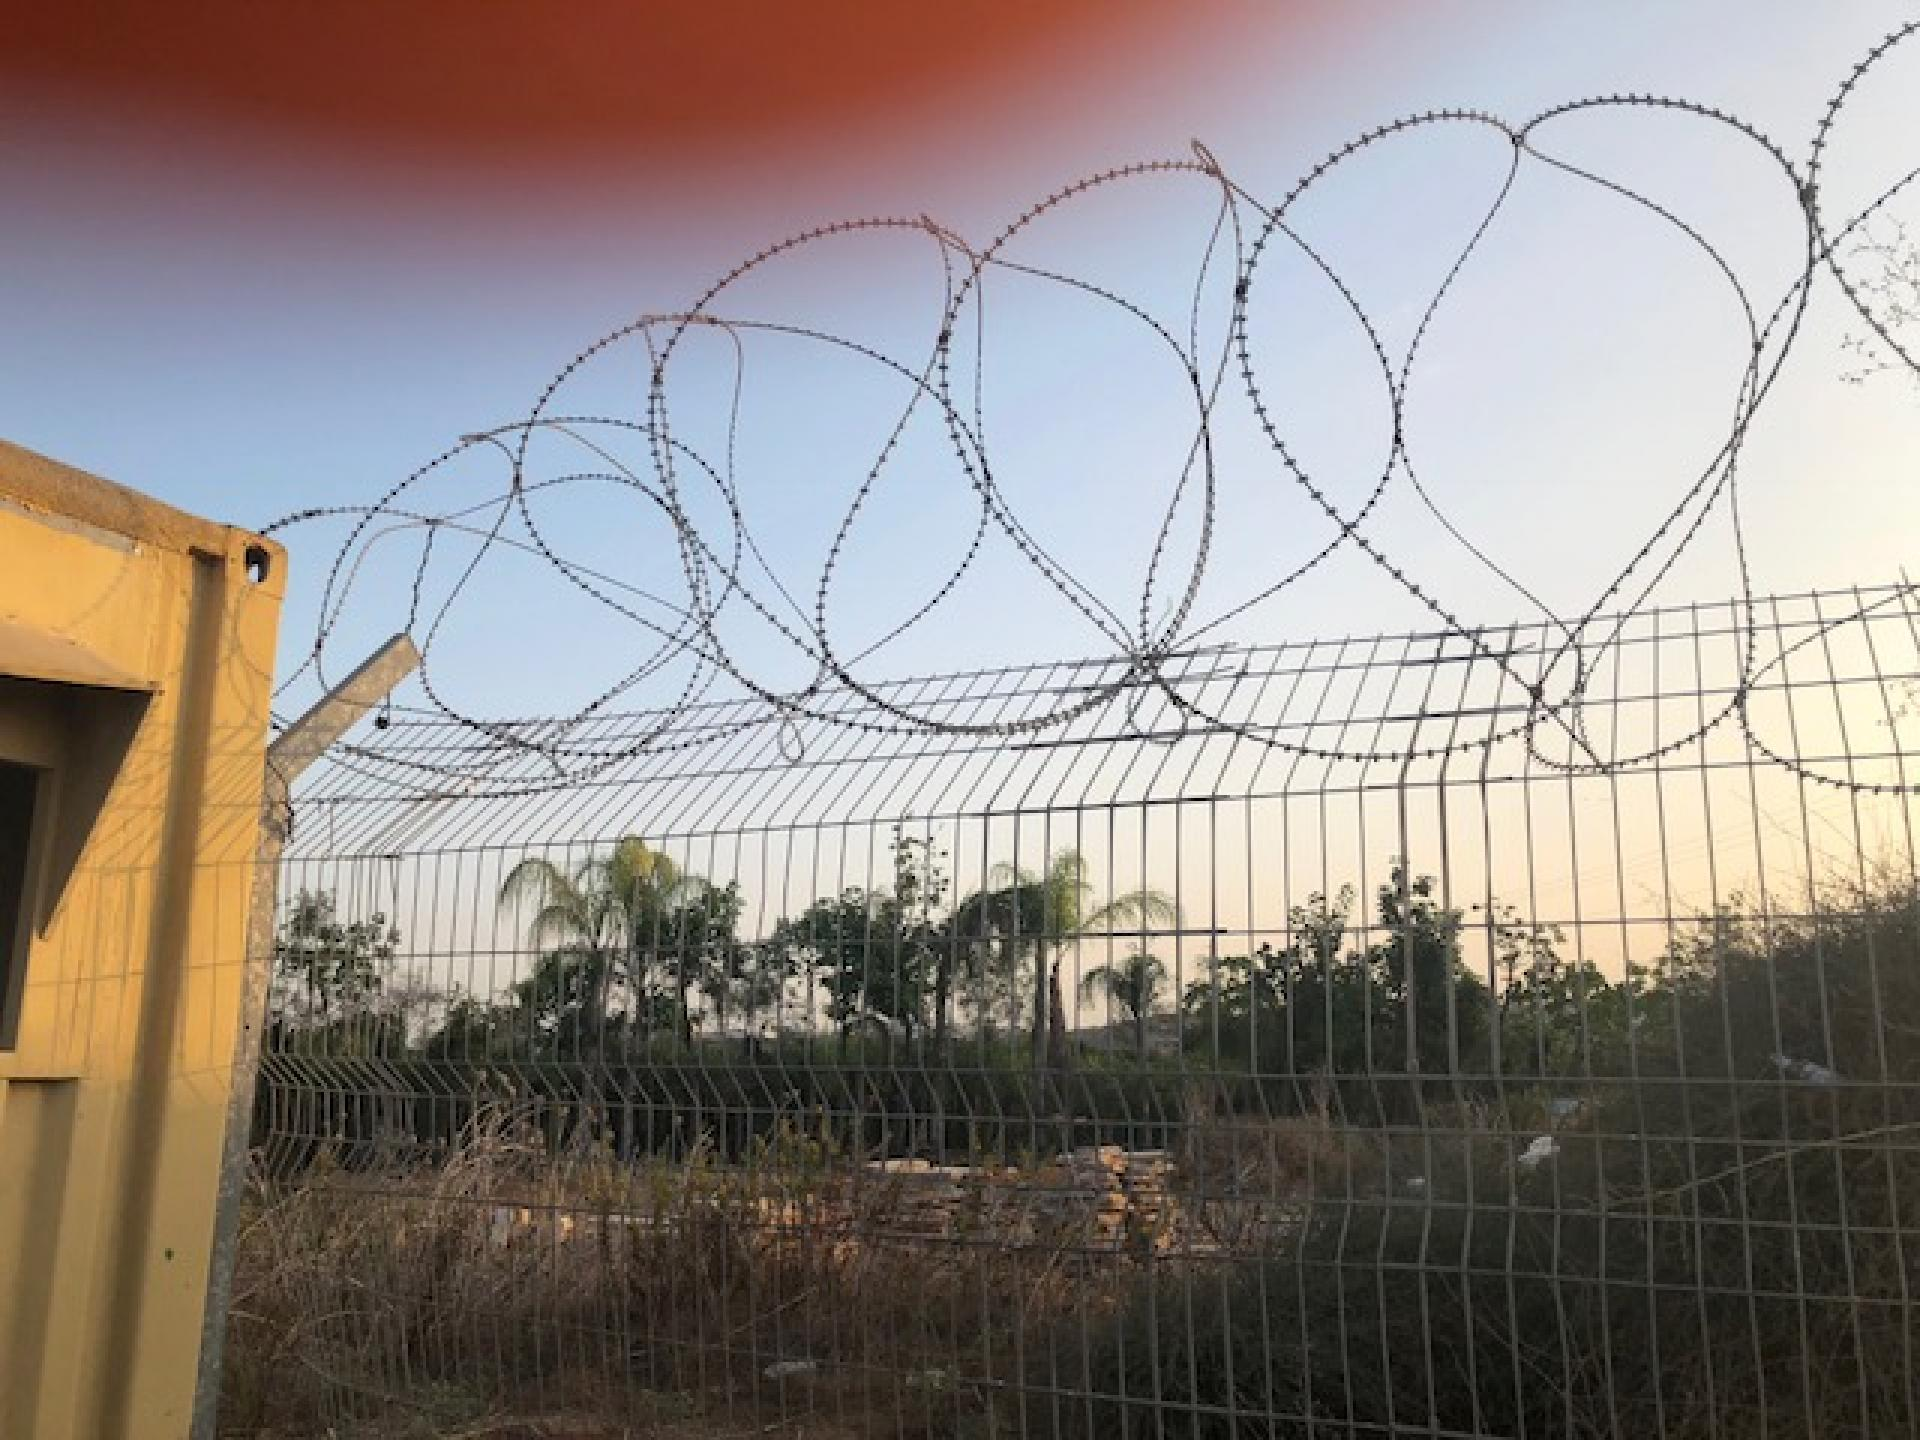 The Habla checkpoint with new barbed wire